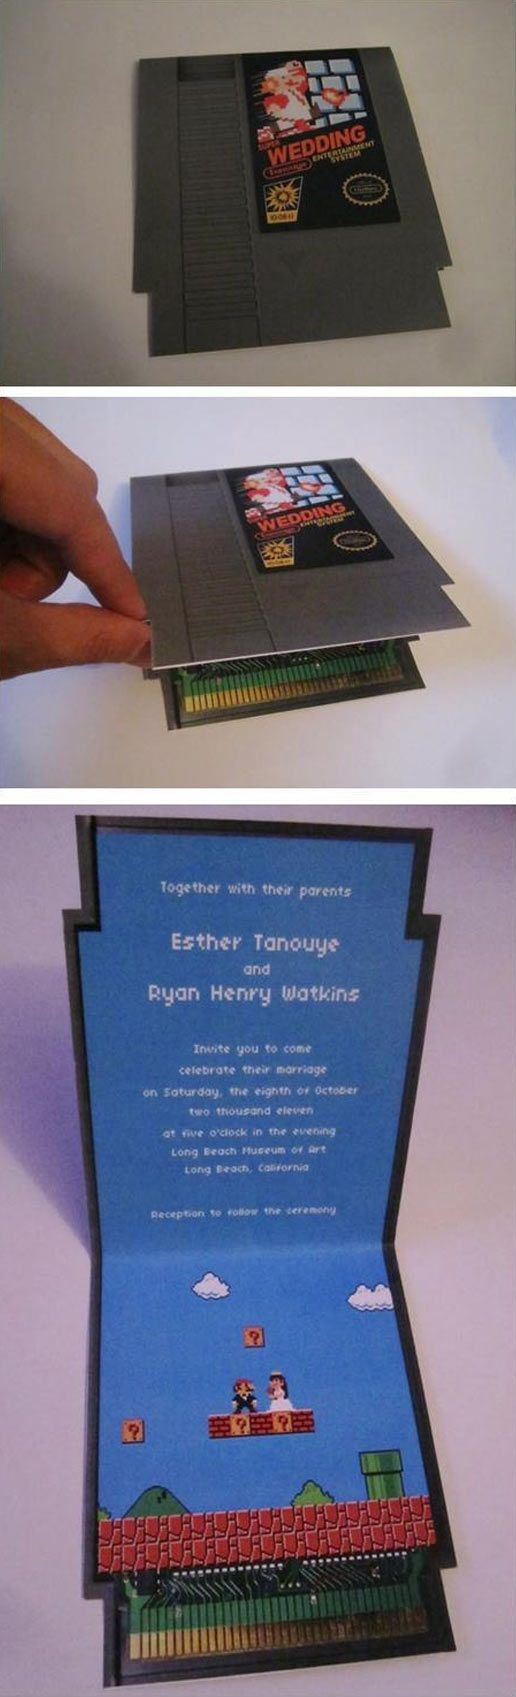 Gamer Wedding Card, Genius!